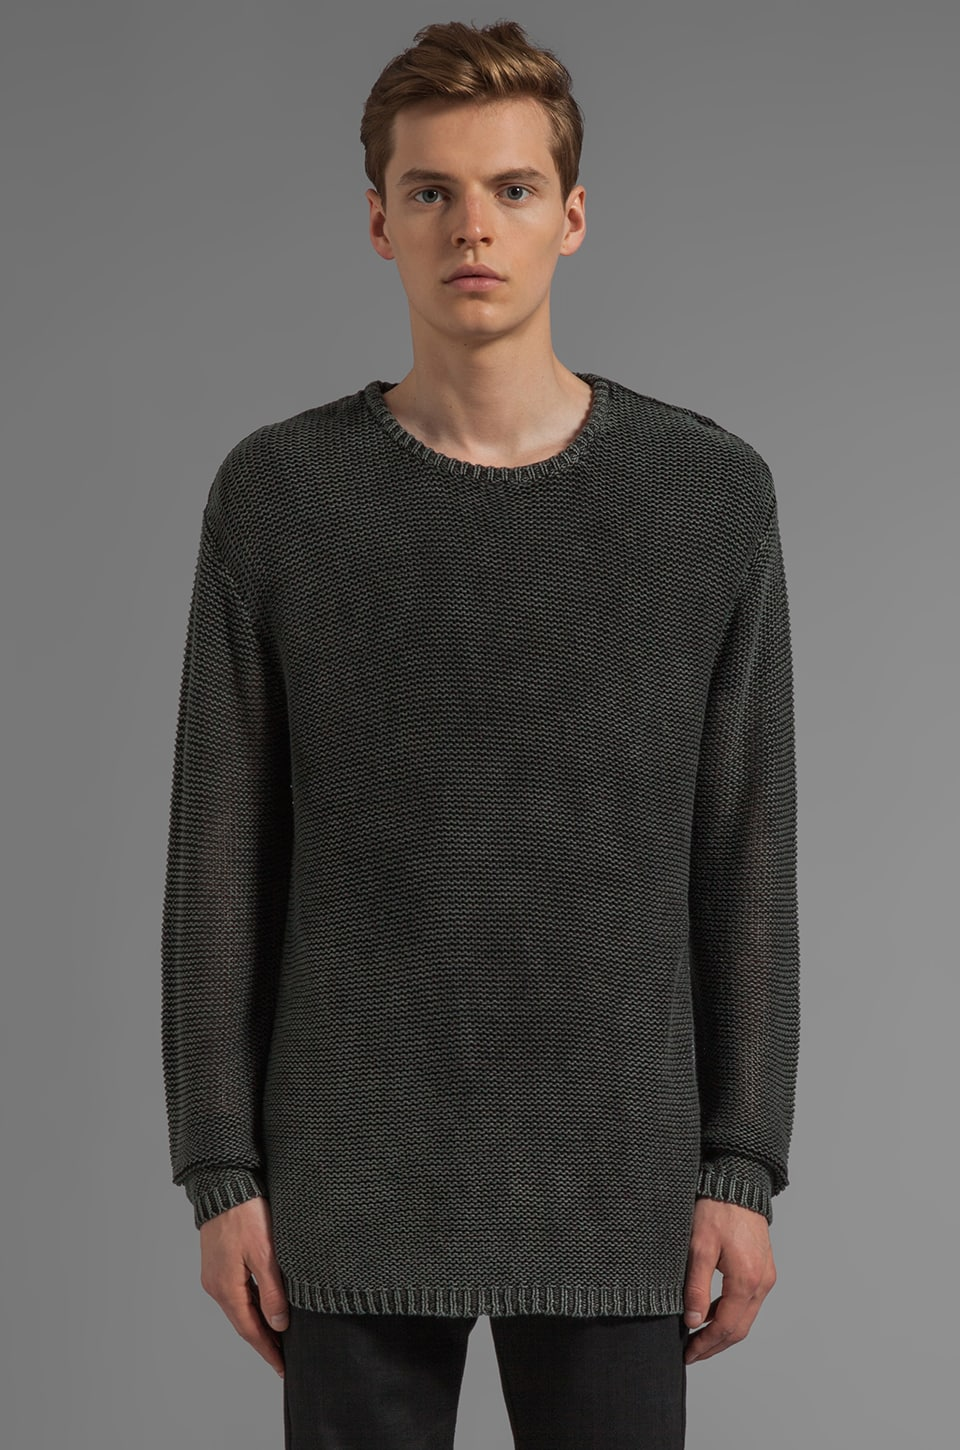 Cheap Monday Dave Sweater in Charcoal w/ Remake Red